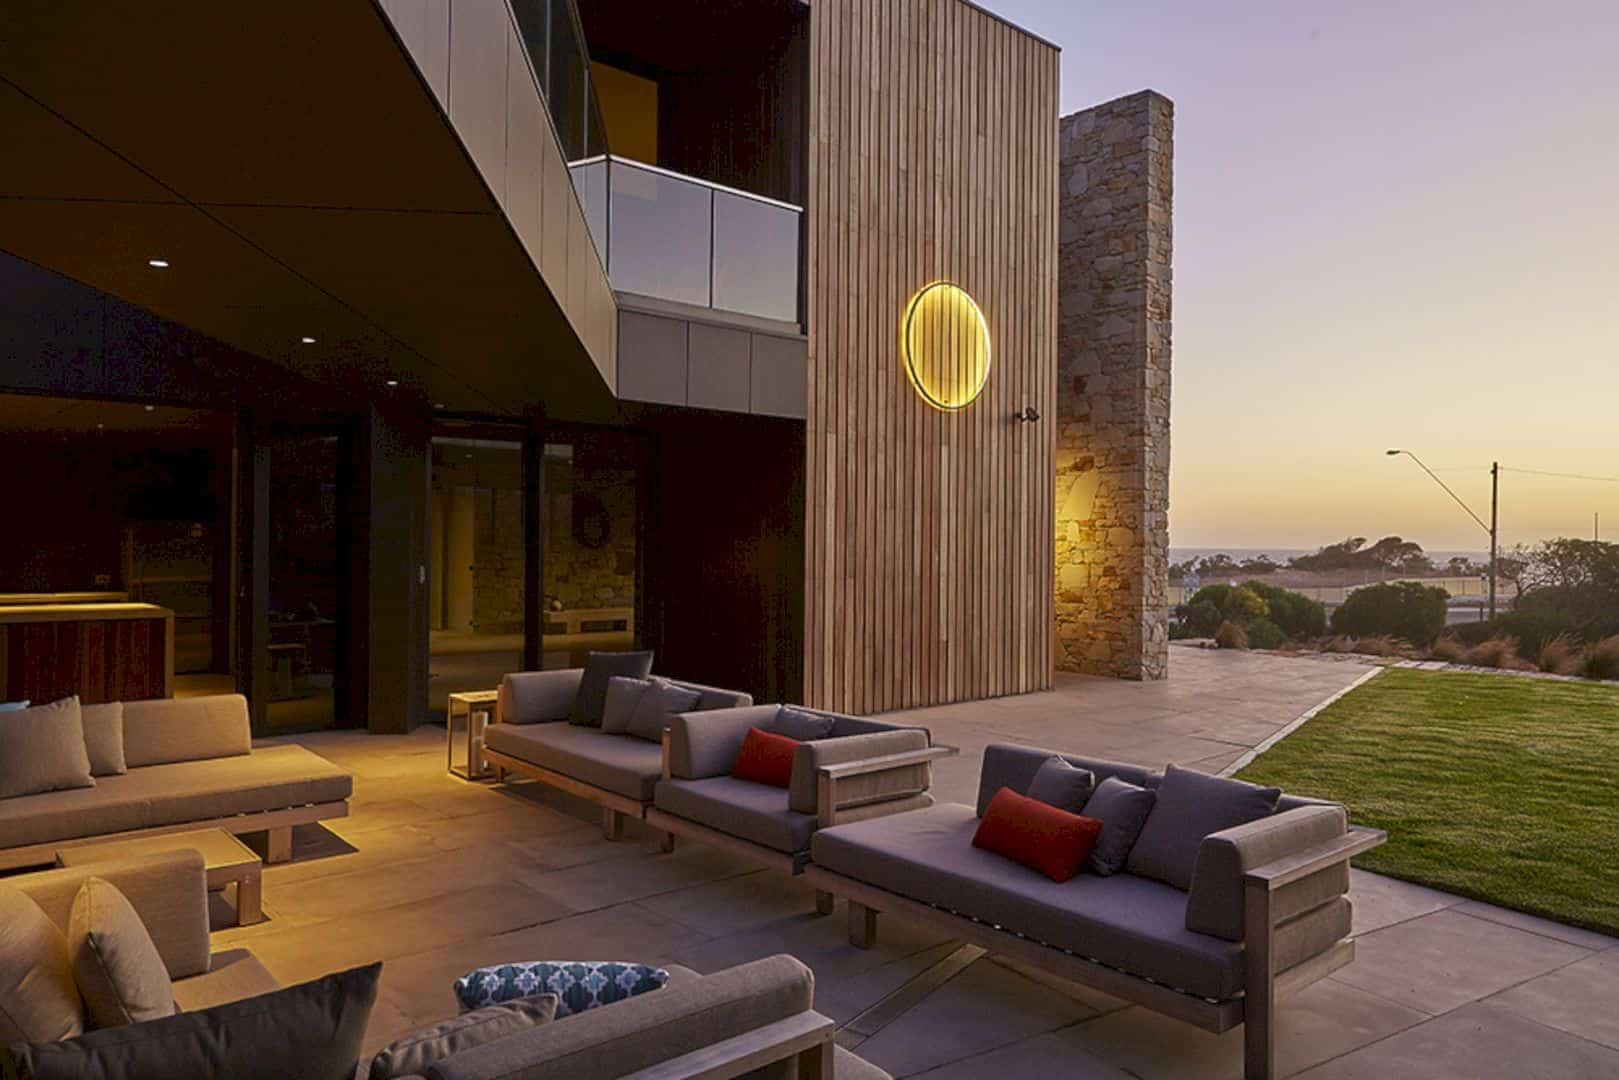 Ocean Residence A Beach House That Merges An Interior And Exterior Surrounding Landscape 11